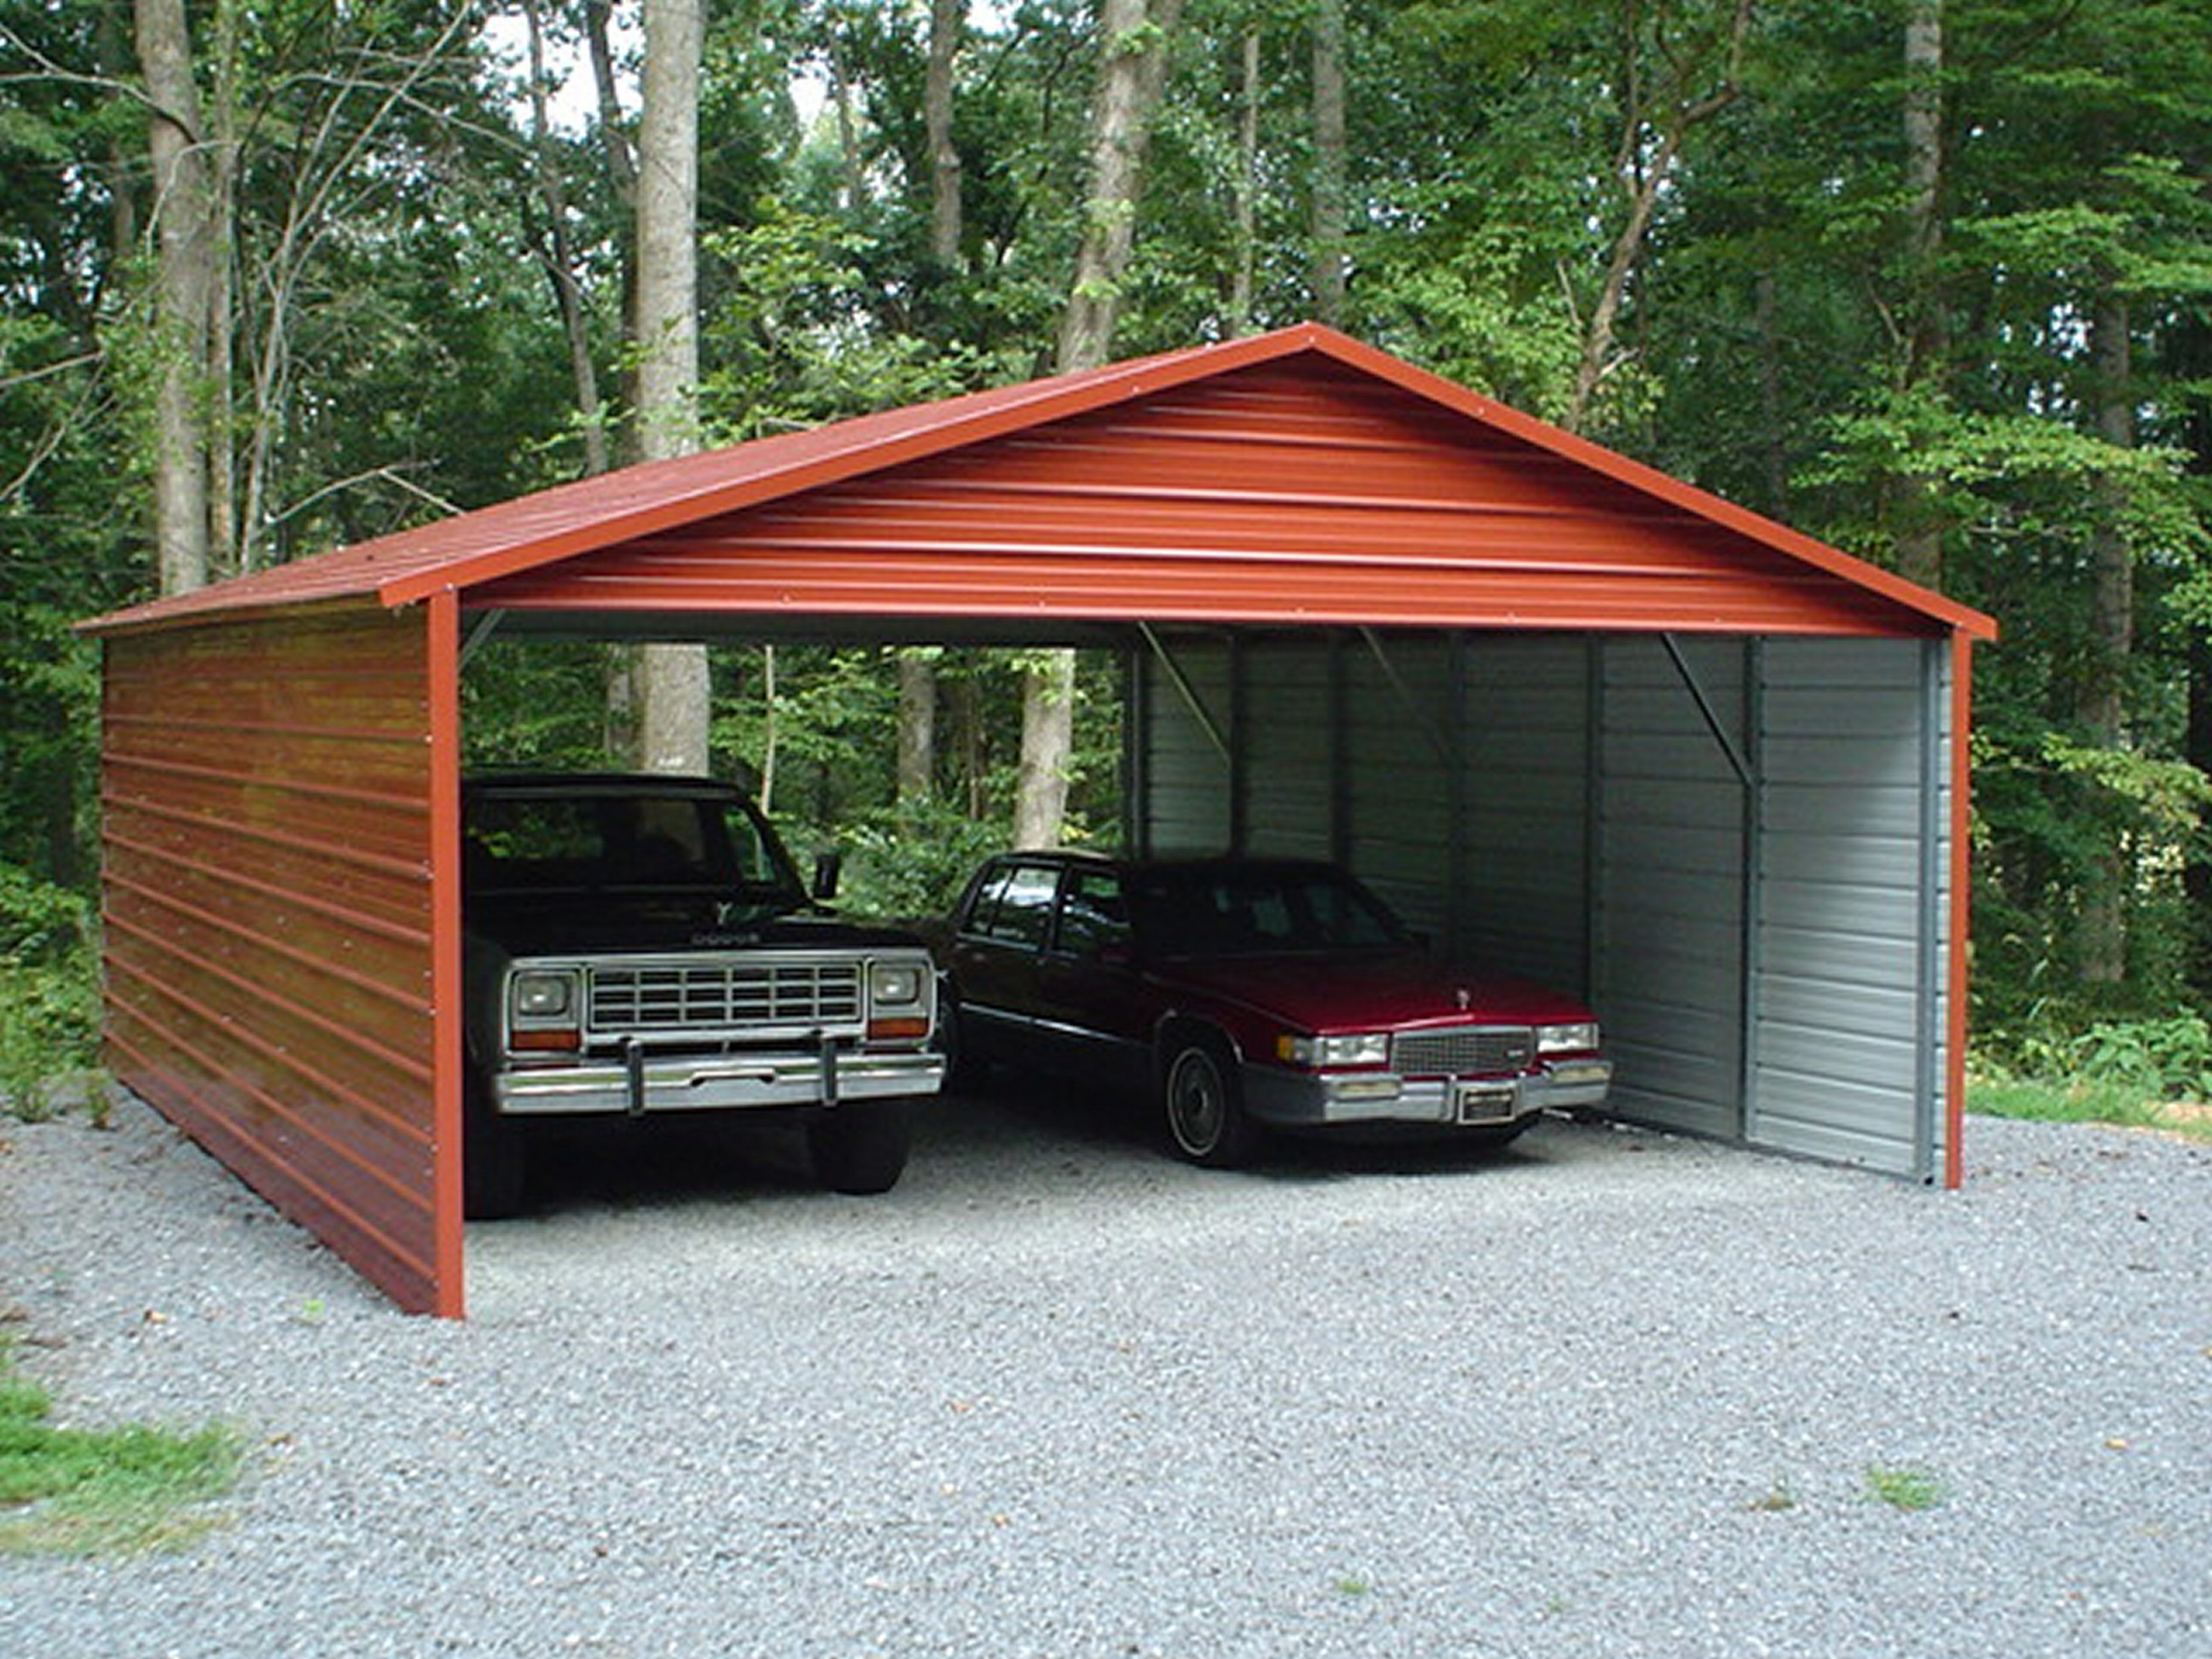 1517731187-ideas-of-carports-metal-car-building-kits-car-shelter-kits-metal-car-shelter-kits.jpg